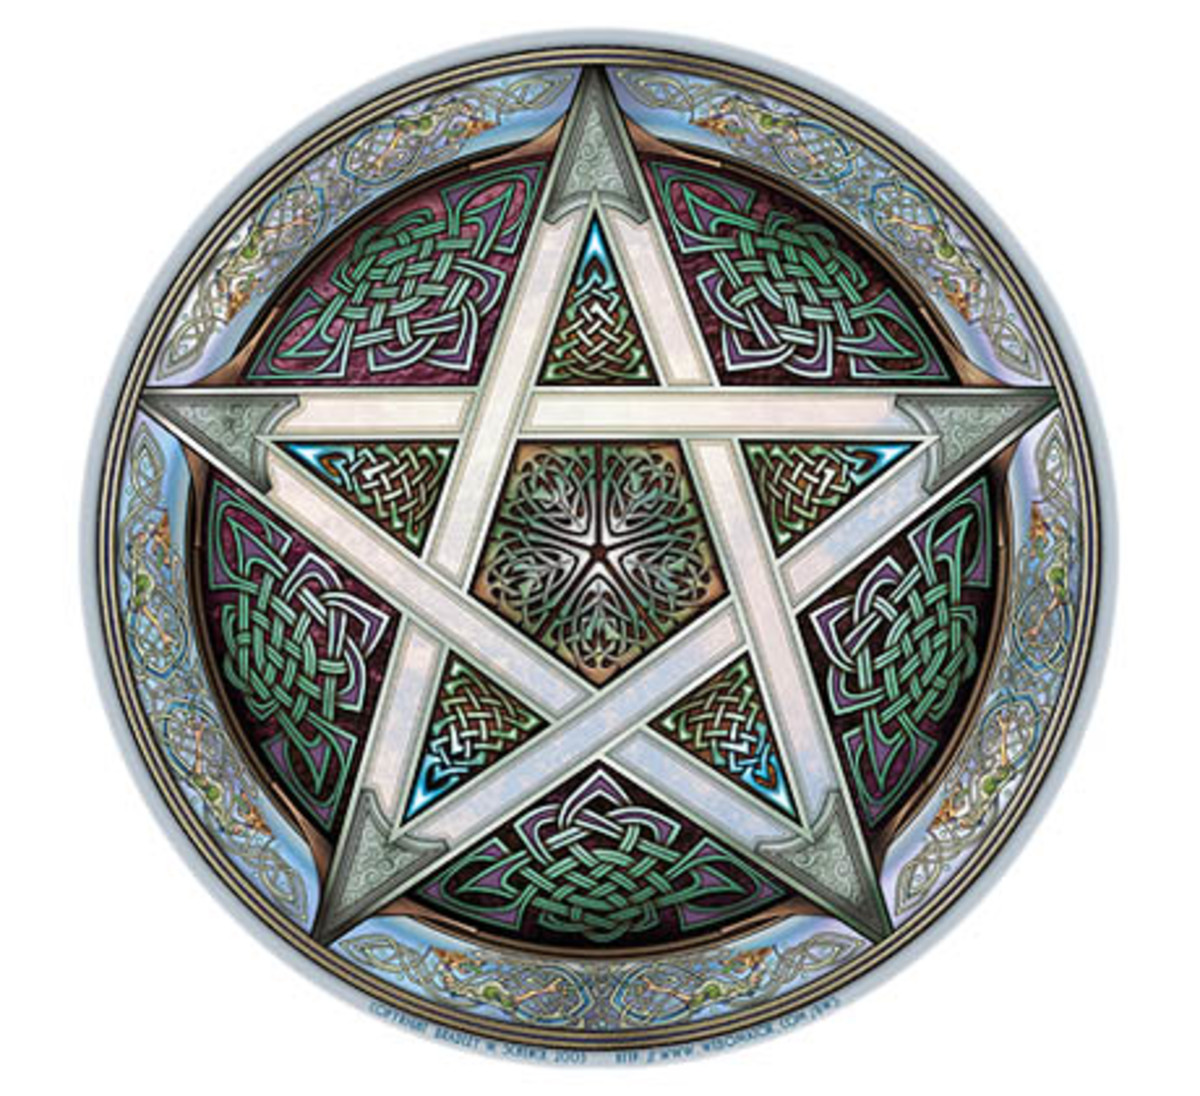 The Pentagle is also known as an endless knot and symbol of faithfulness.